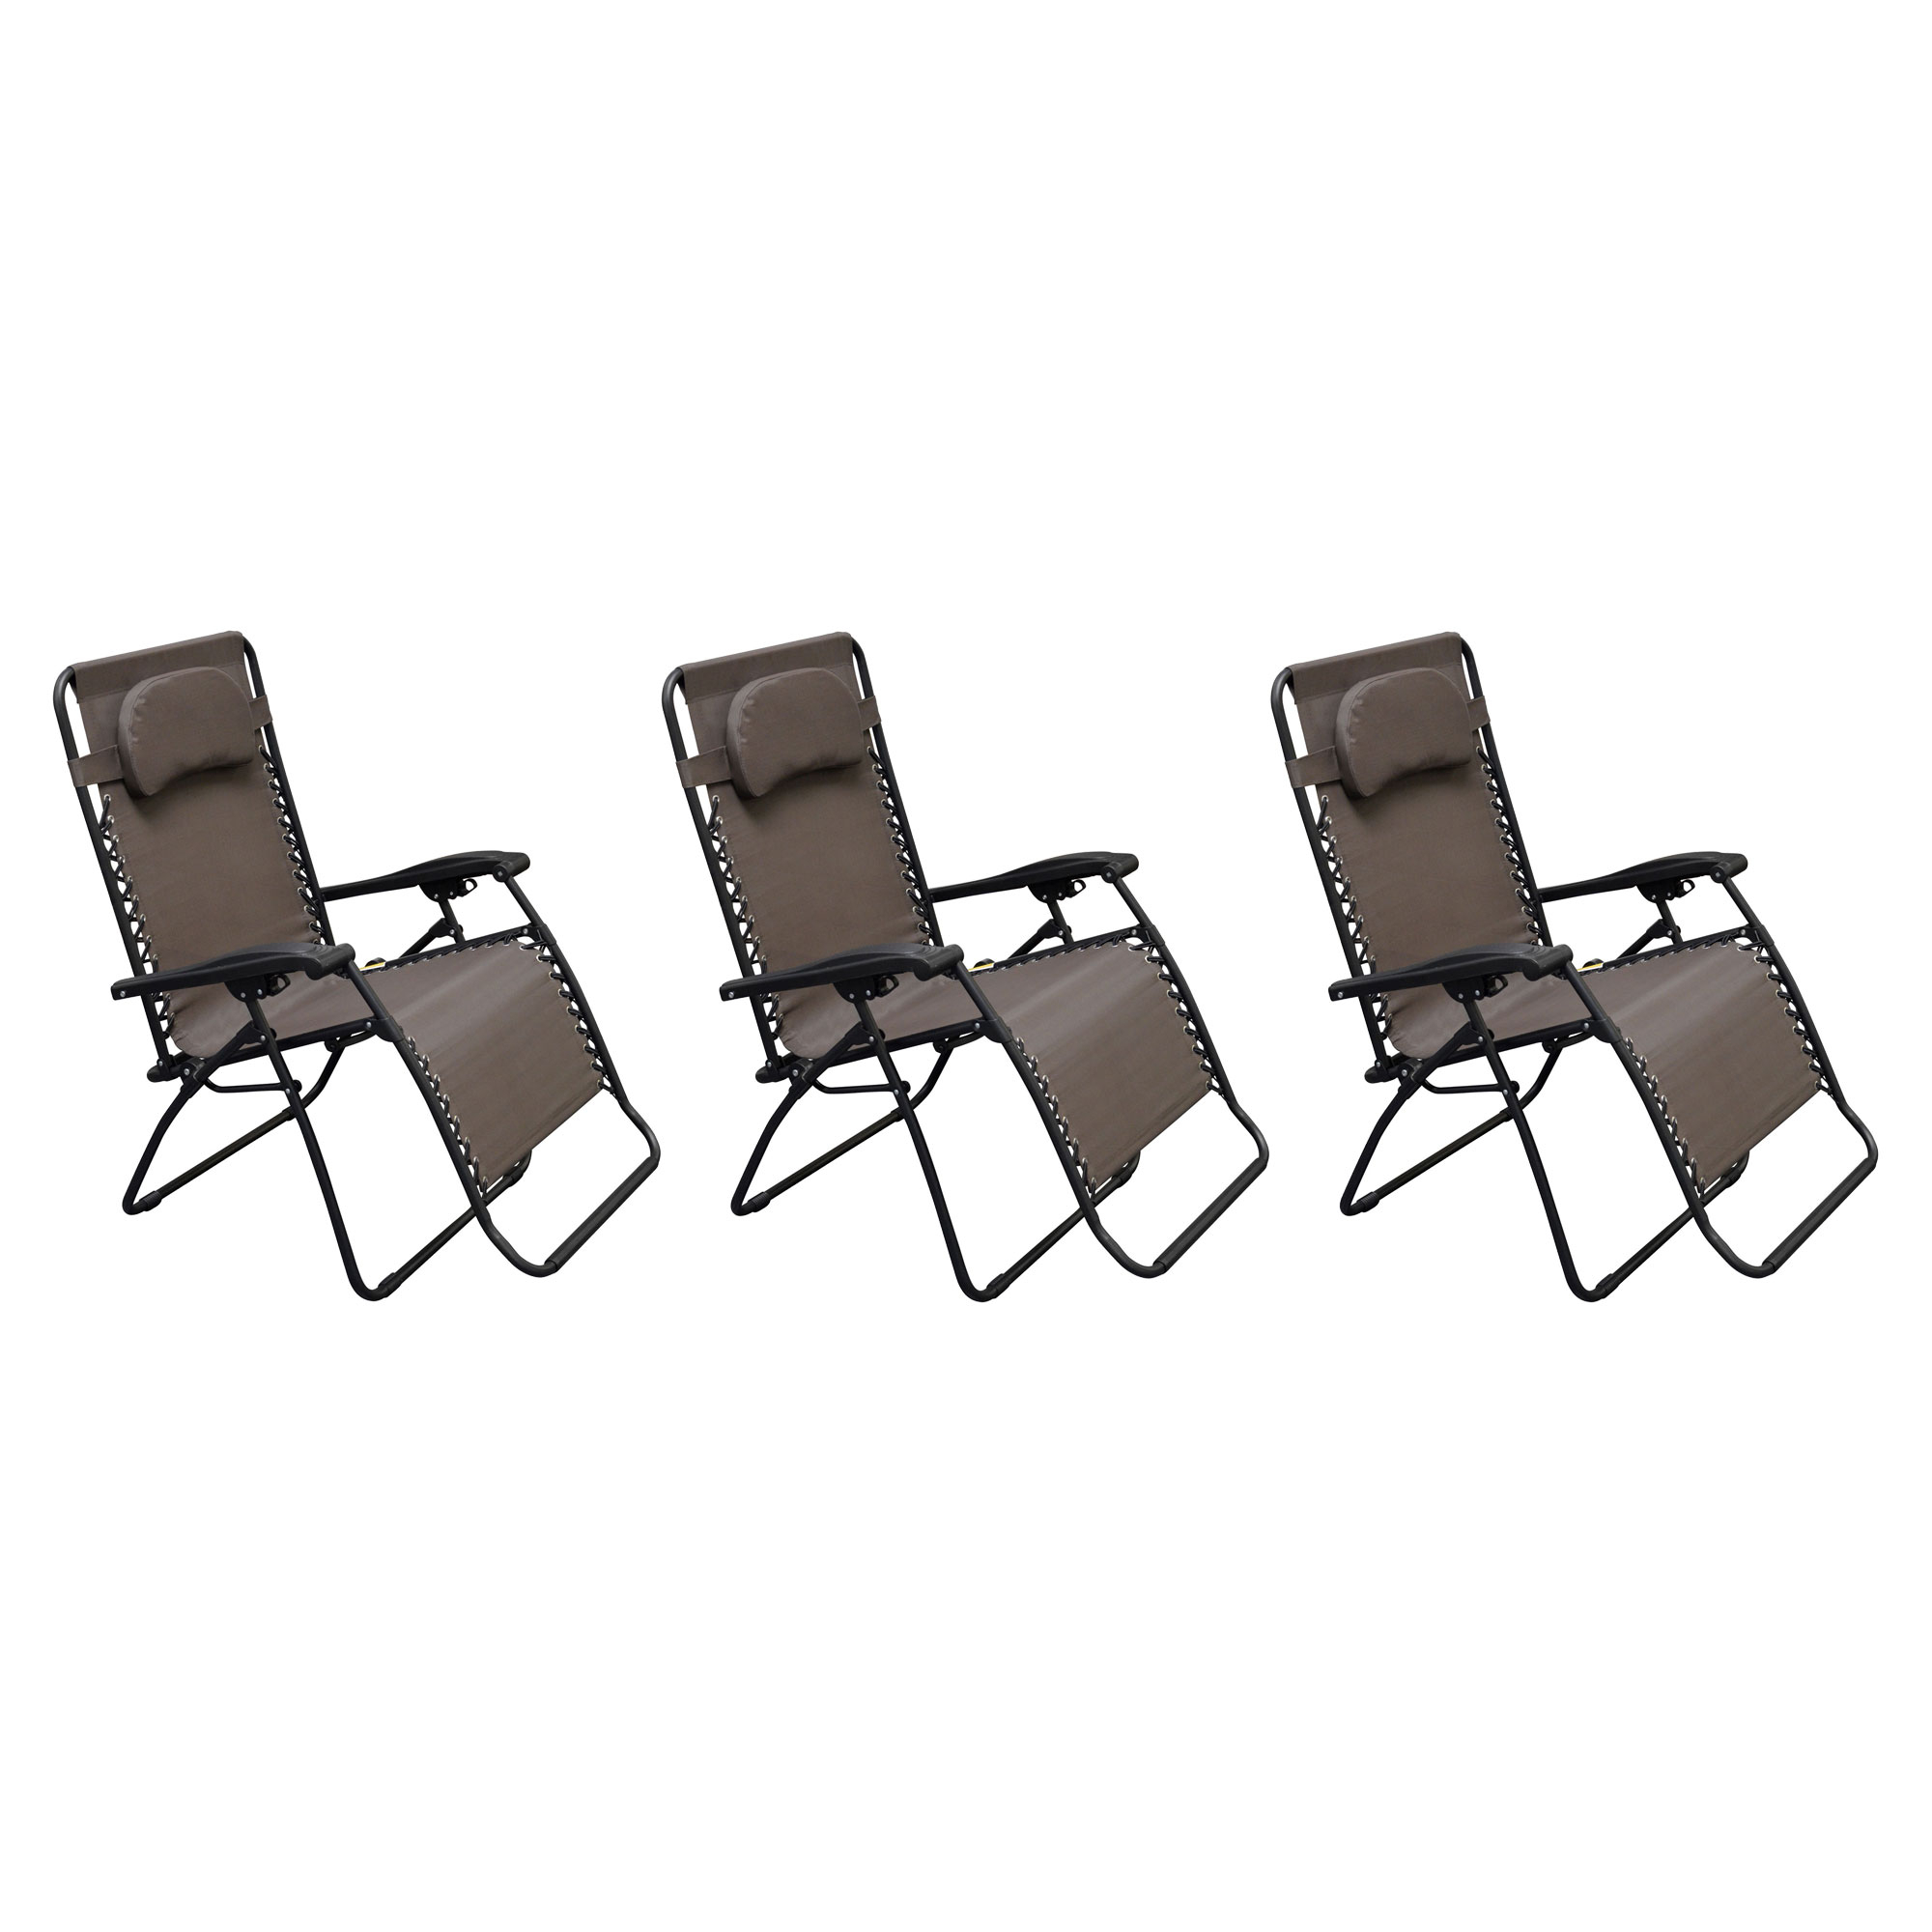 Most Popular Caravan Canopy Infinity Zero Gravity Frame Oversized Patio Chair, Brown (3 Pack) Regarding Caravan Canopy Zero Gravity Chairs (View 3 of 25)